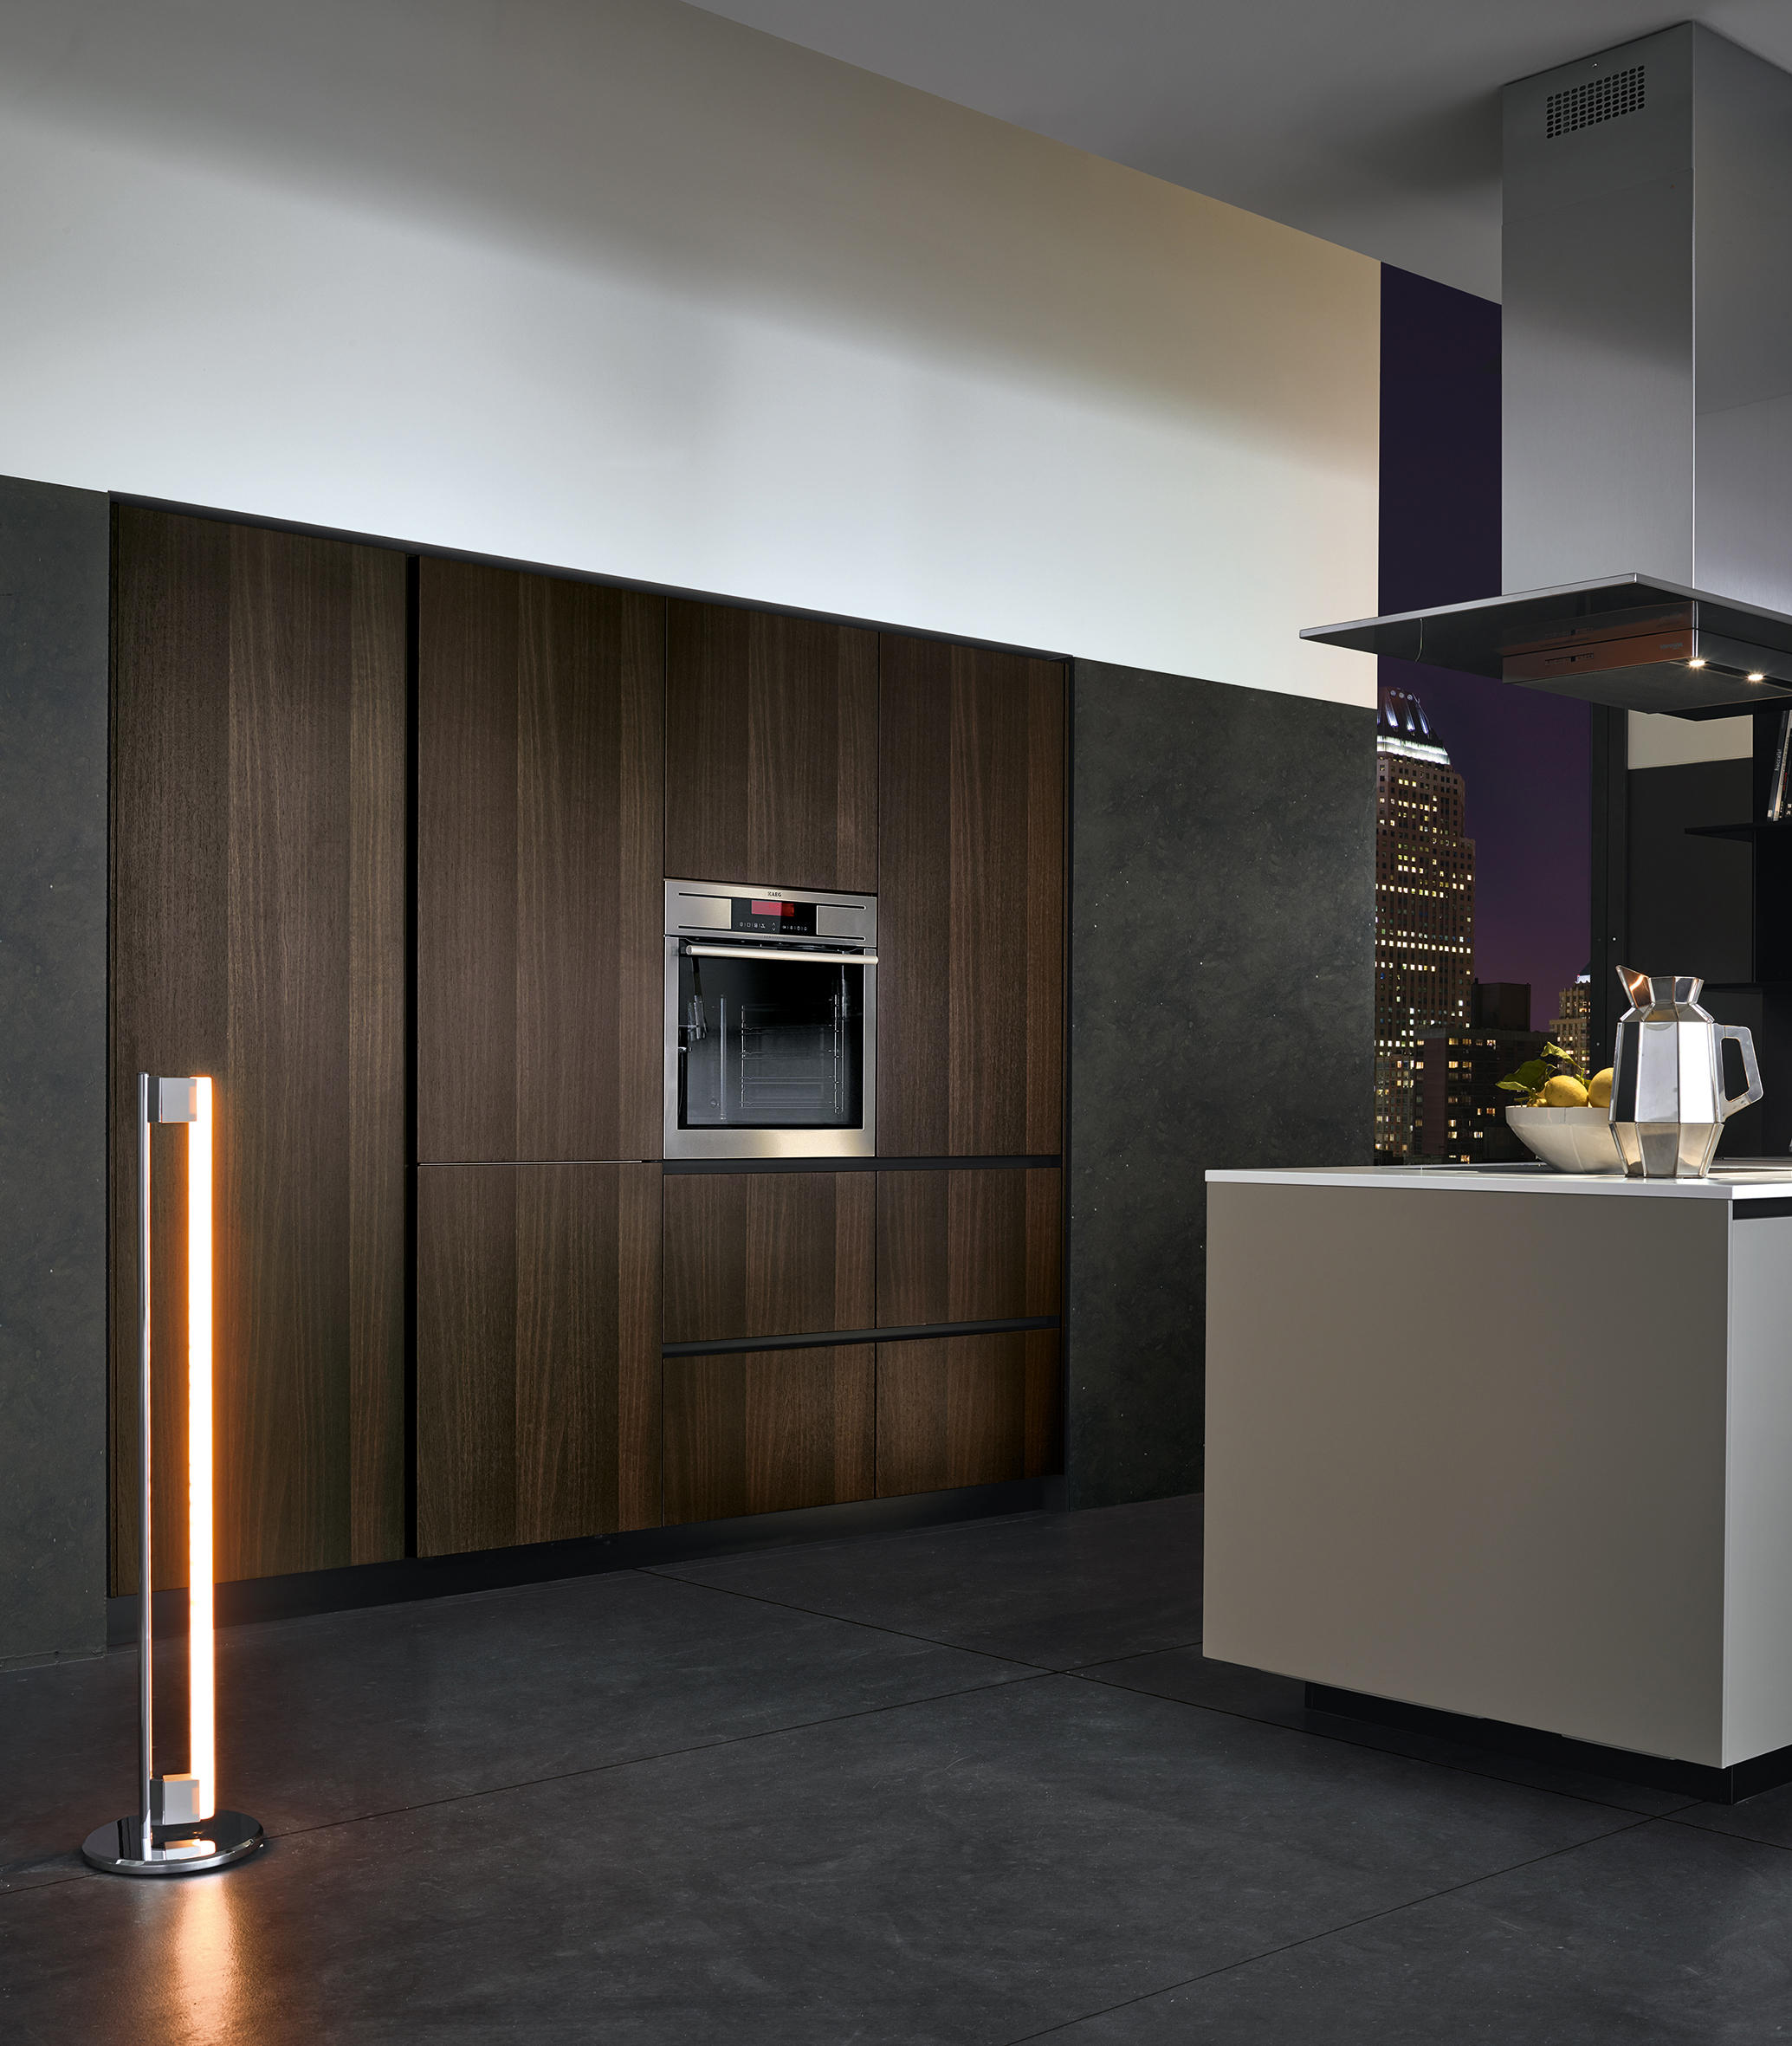 ALEA - Cucine a parete Varenna Poliform | Architonic